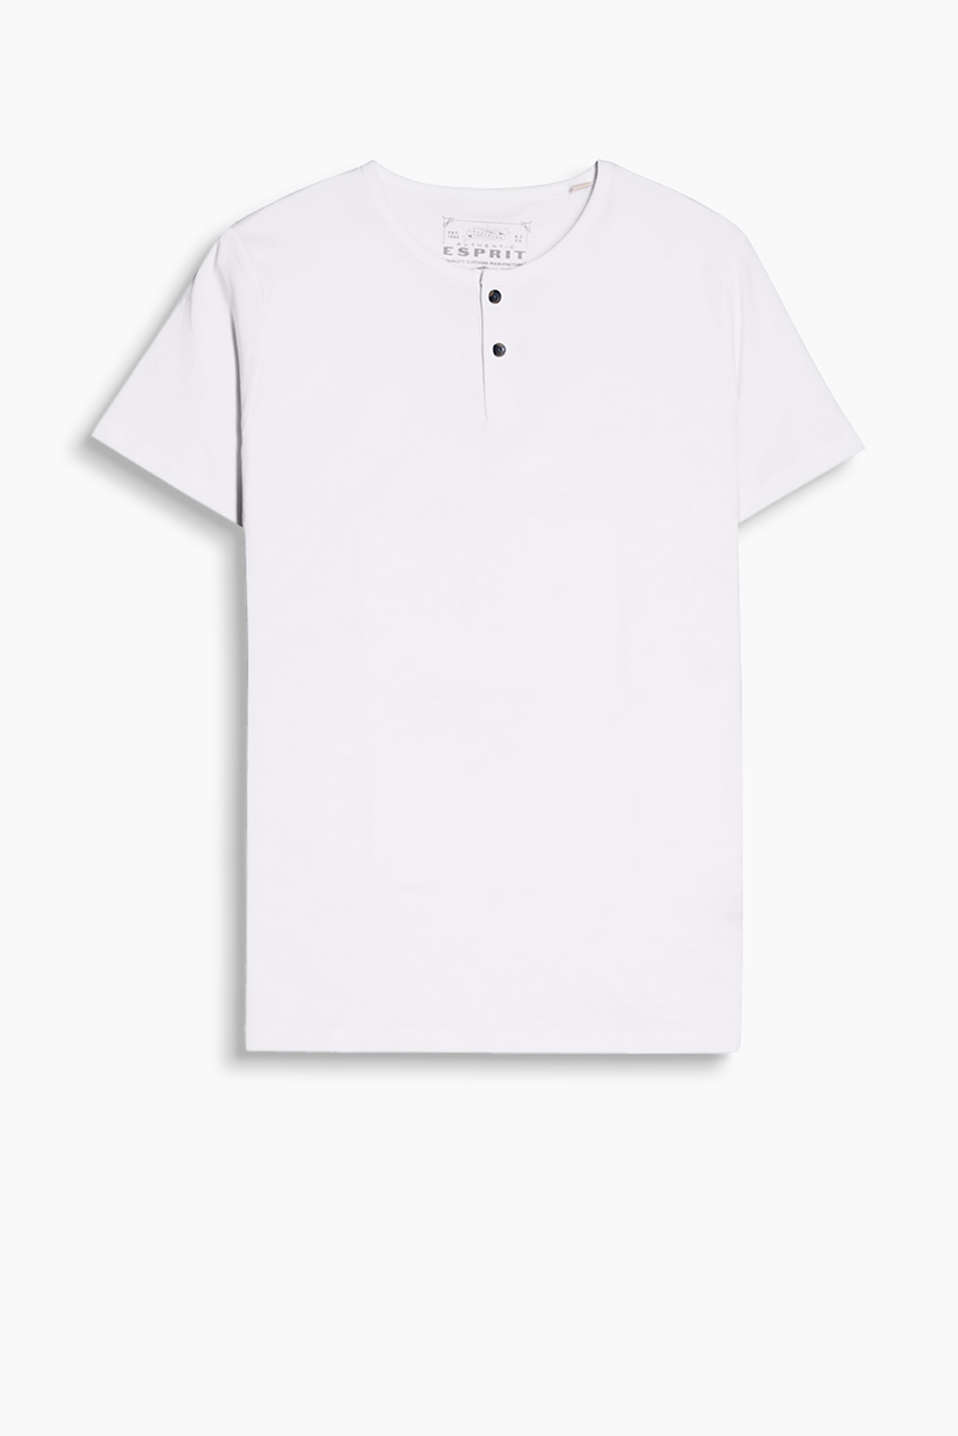 Henley-style T-shirt, made of 100% cotton